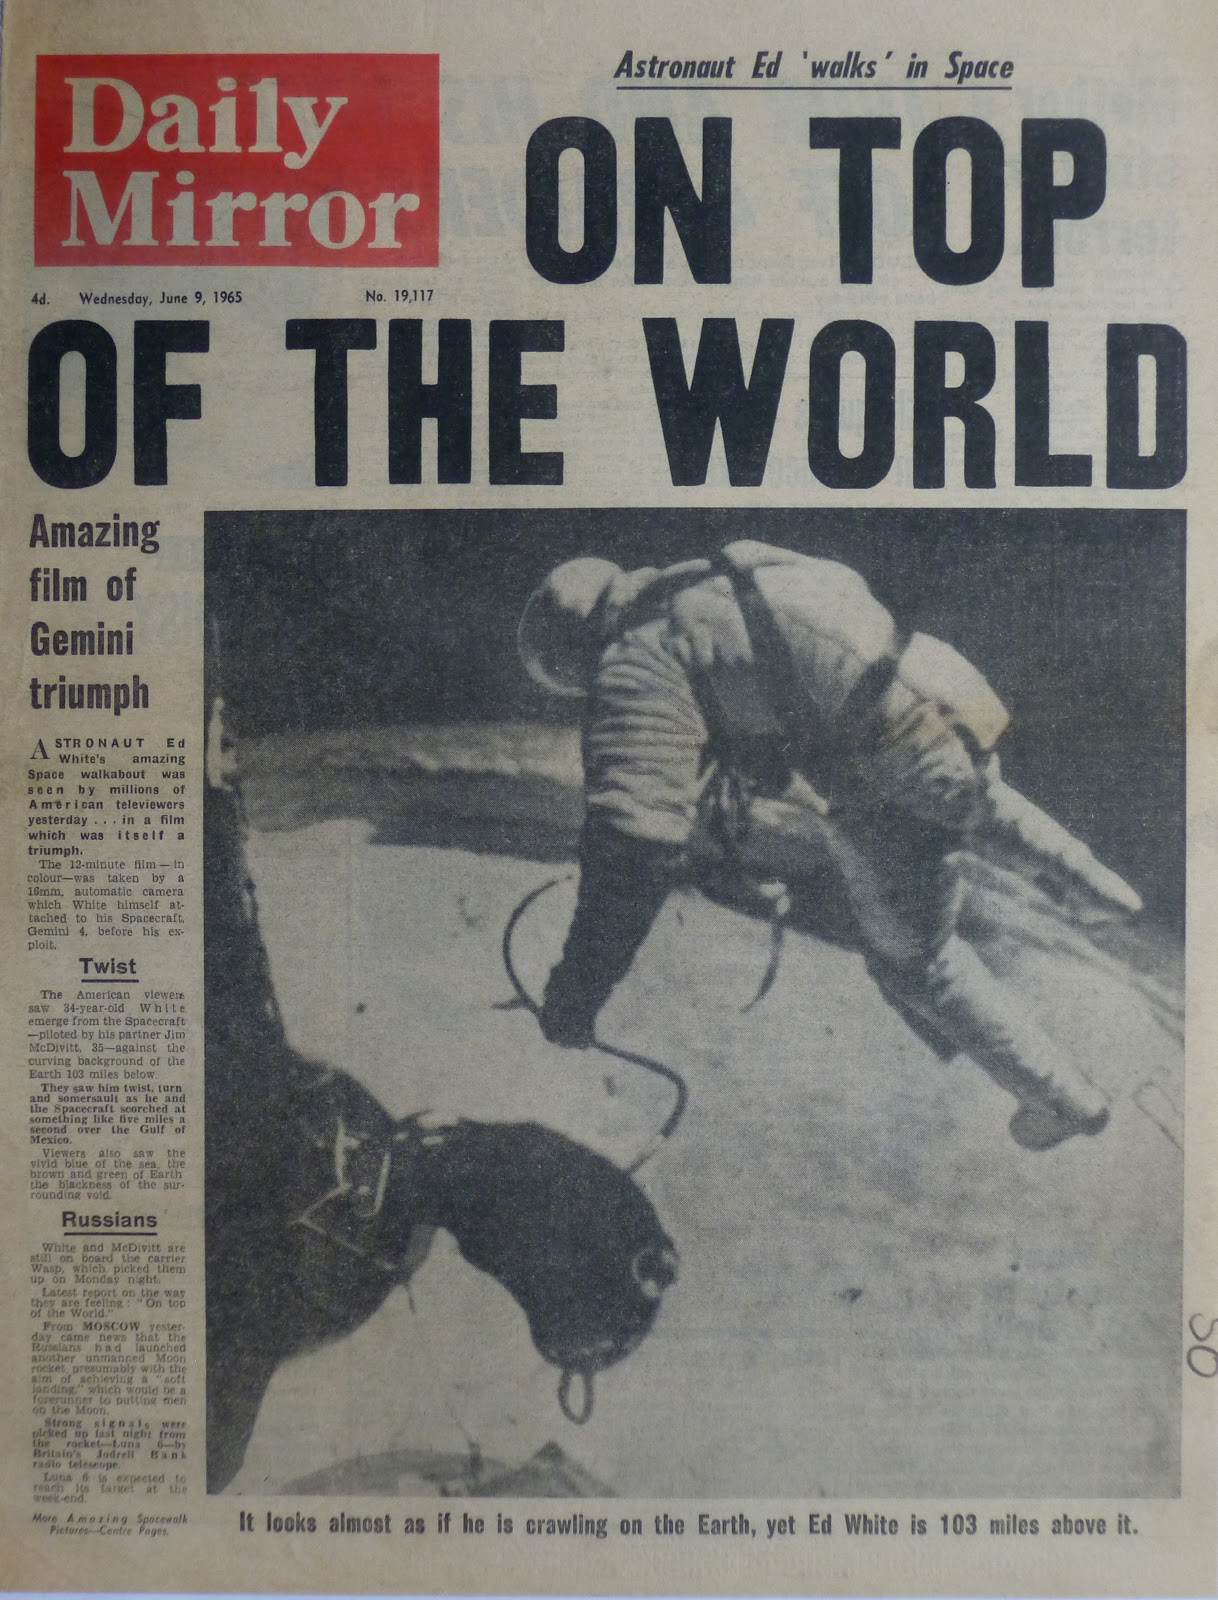 hold the front page random cutting us space walk 1965